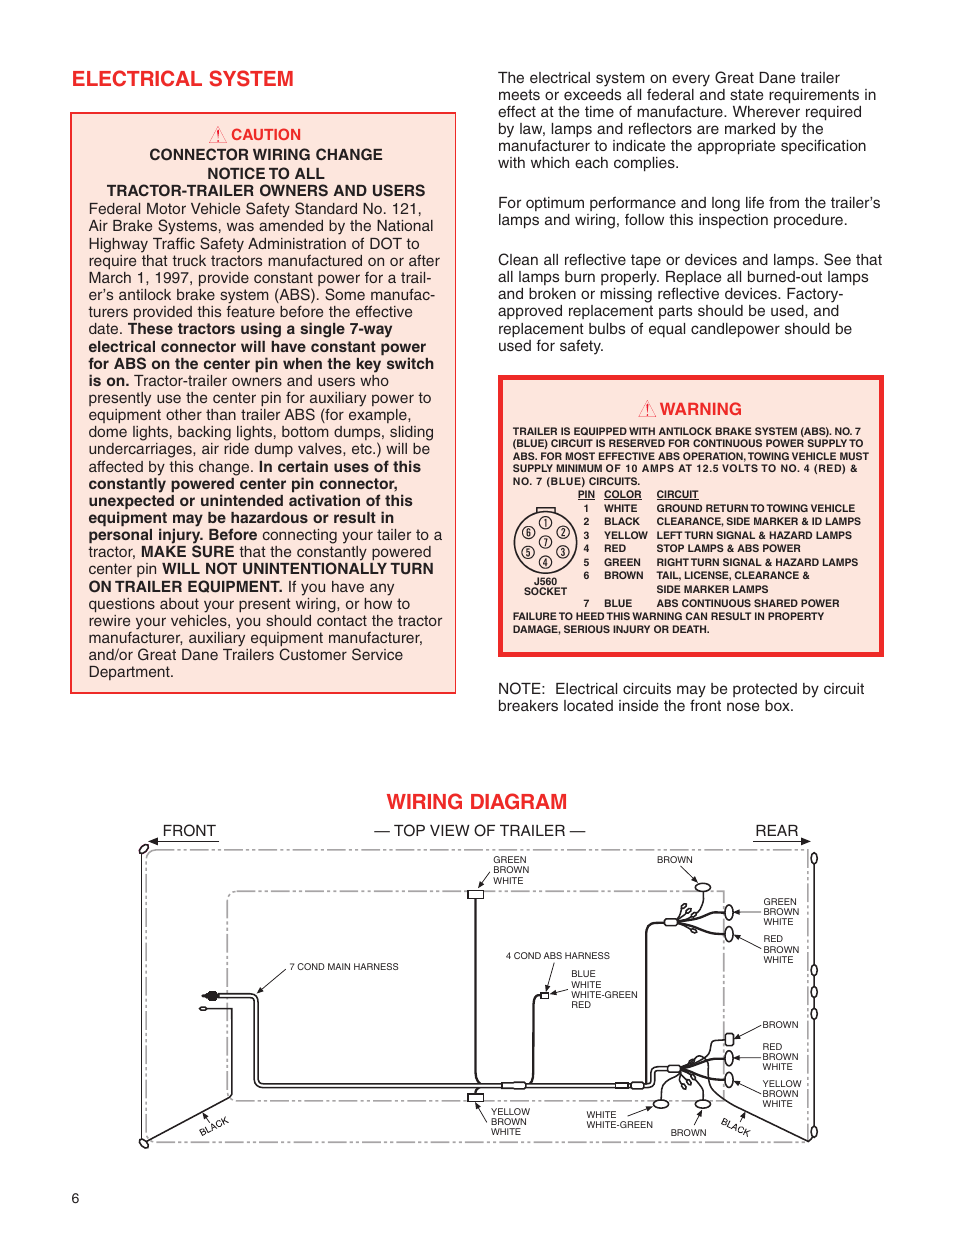 electrical system wiring diagram warning great dane 42101401 rh manualsdir com Interstate Cargo Trailer Wiring Diagram Tractor- Trailer Wiring Diagram